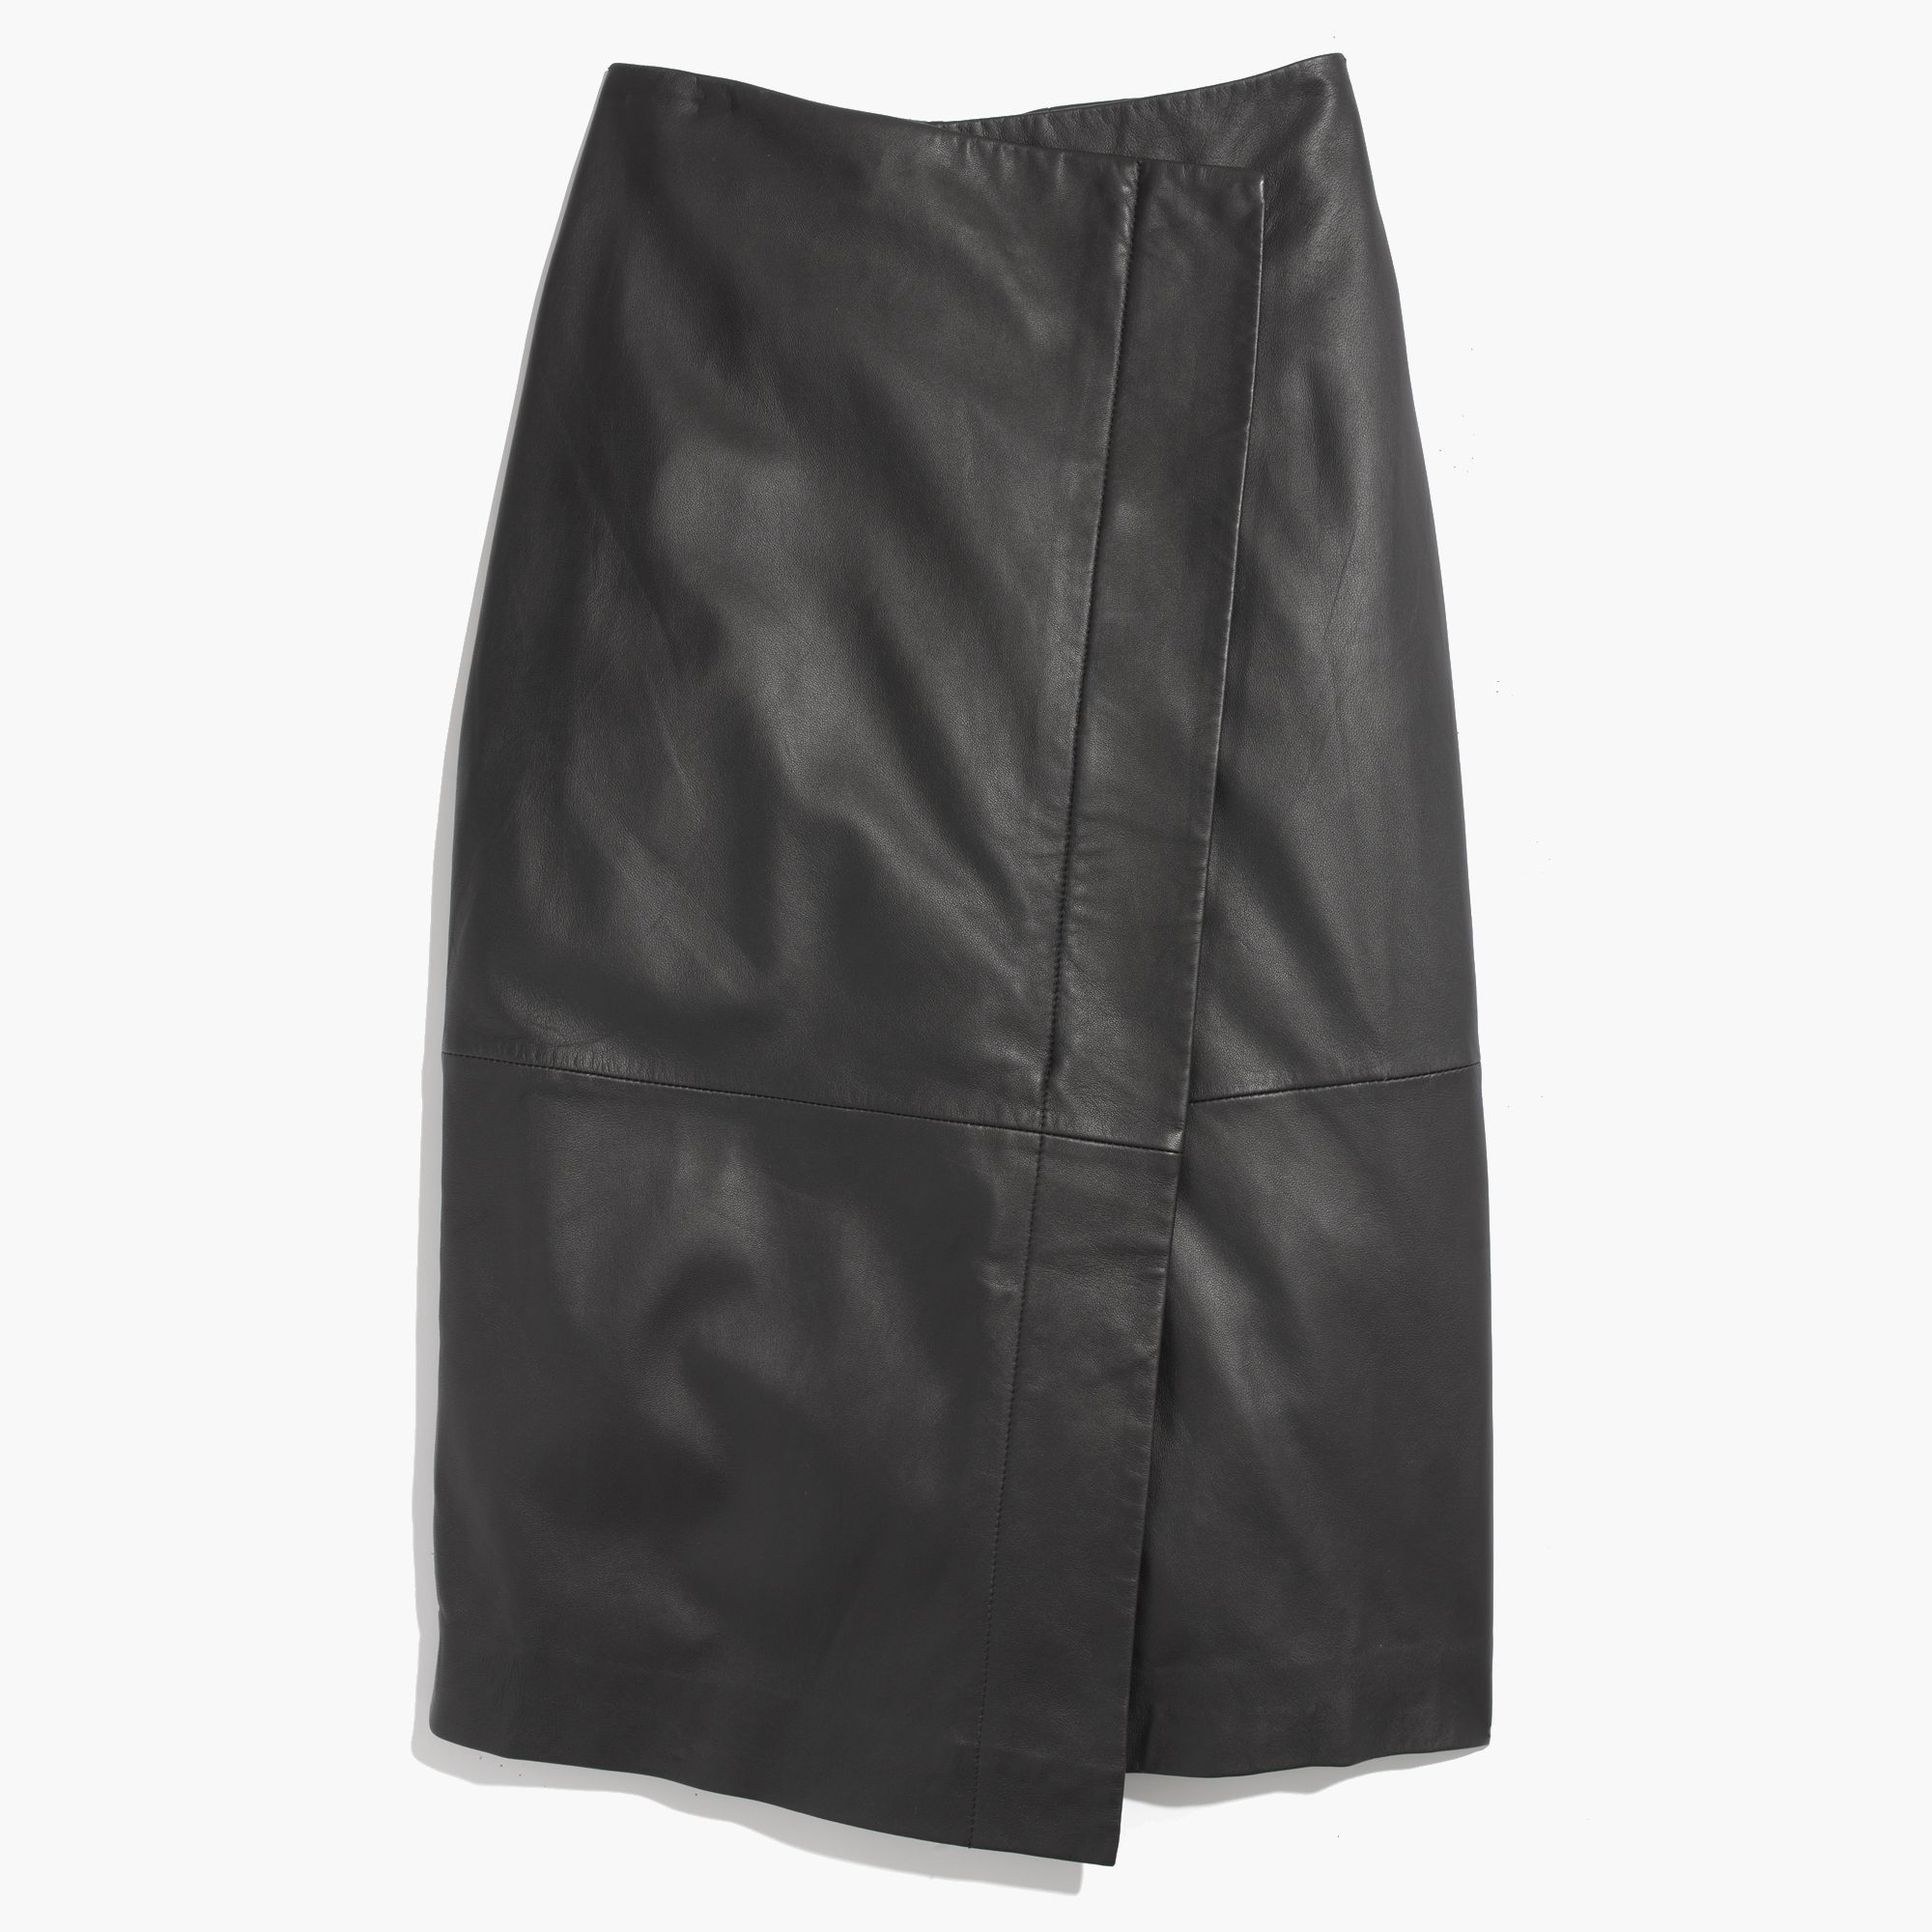 Madewell Leather Wrap Midi Skirt in Black | Lyst